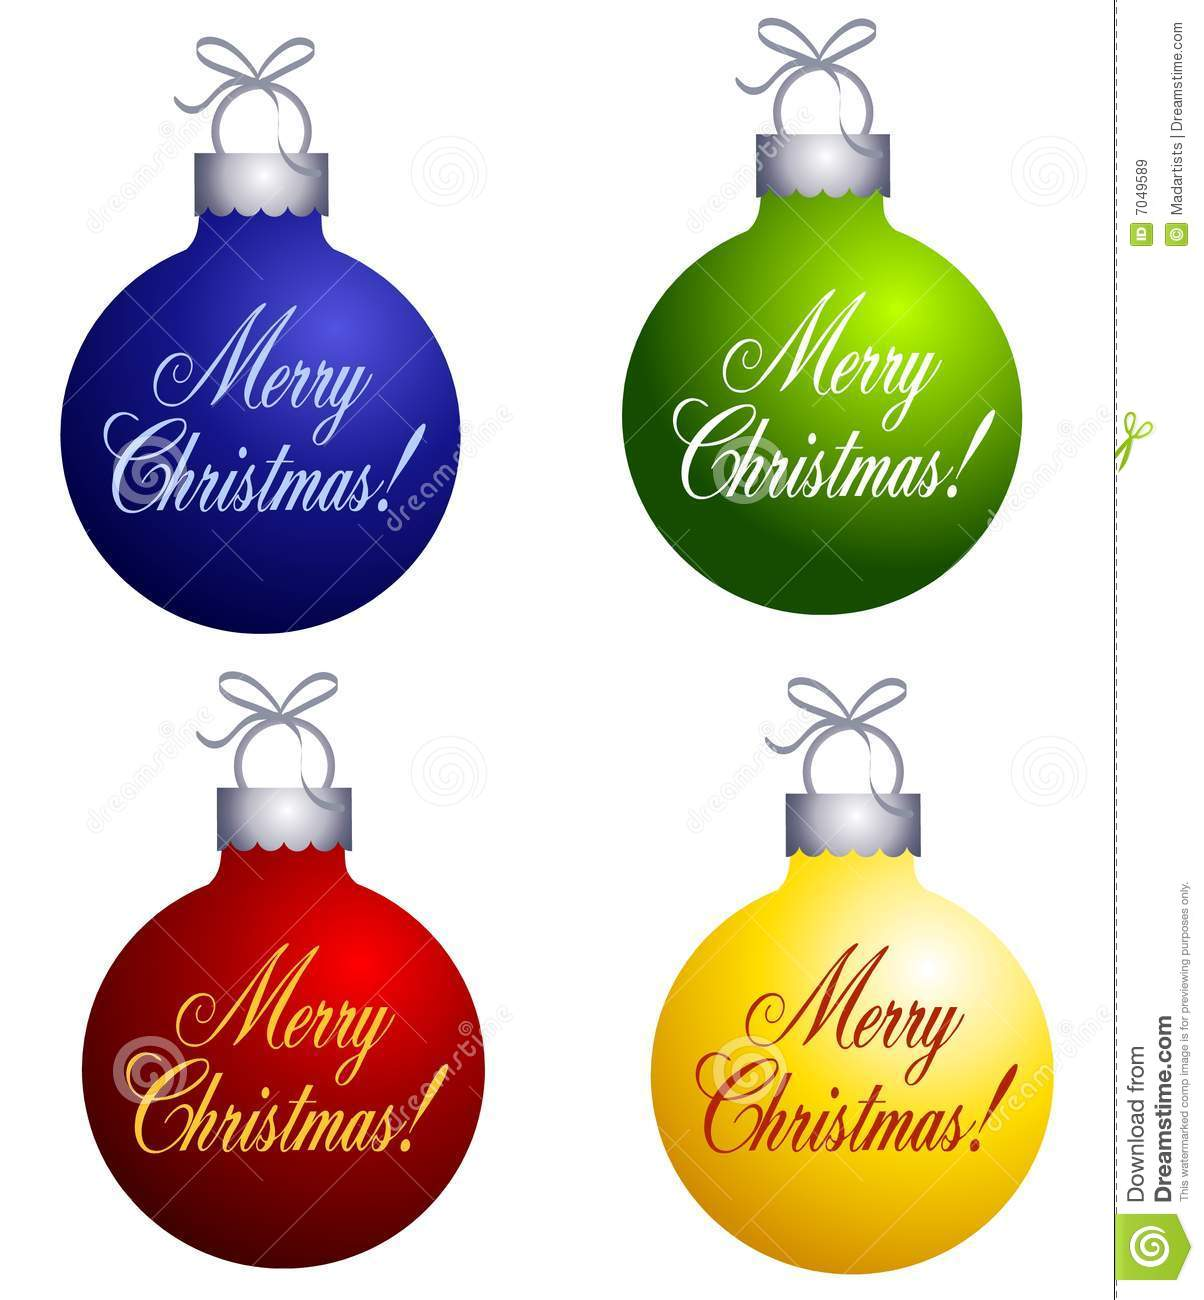 Merry Christmas Ornaments: Merry Christmas Ornaments Stock Illustration. Image Of